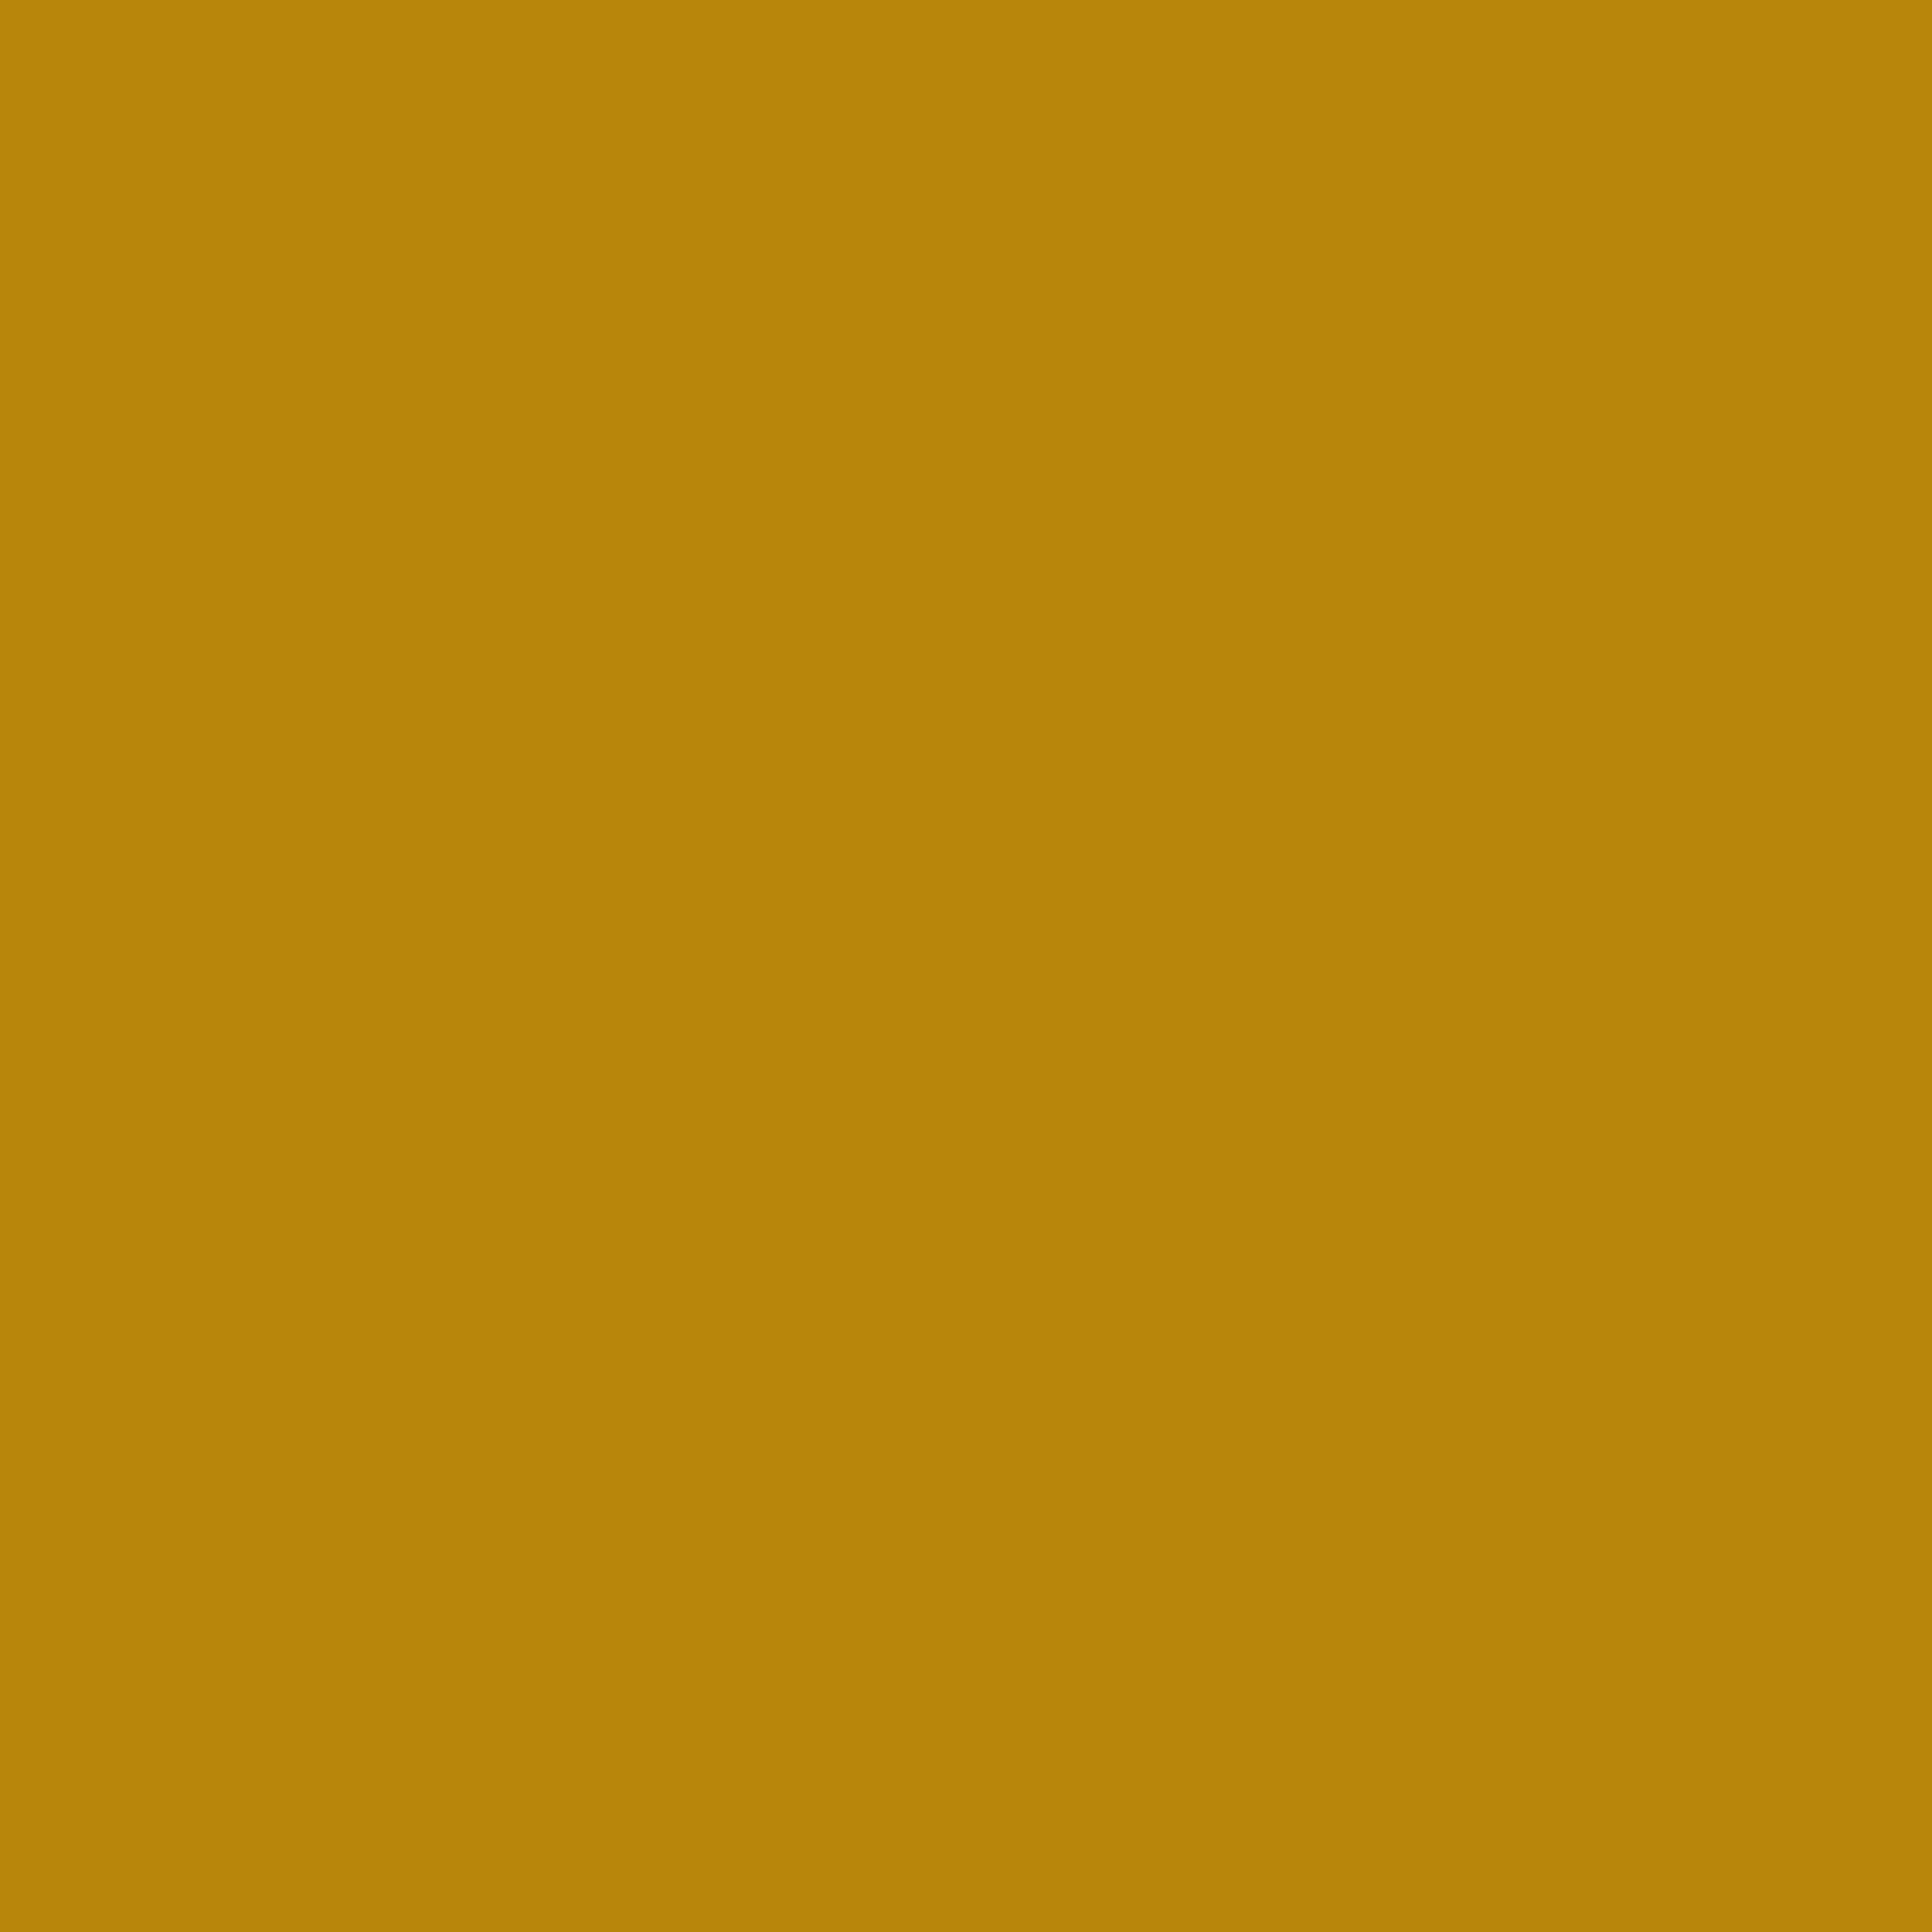 2732x2732 Dark Goldenrod Solid Color Background